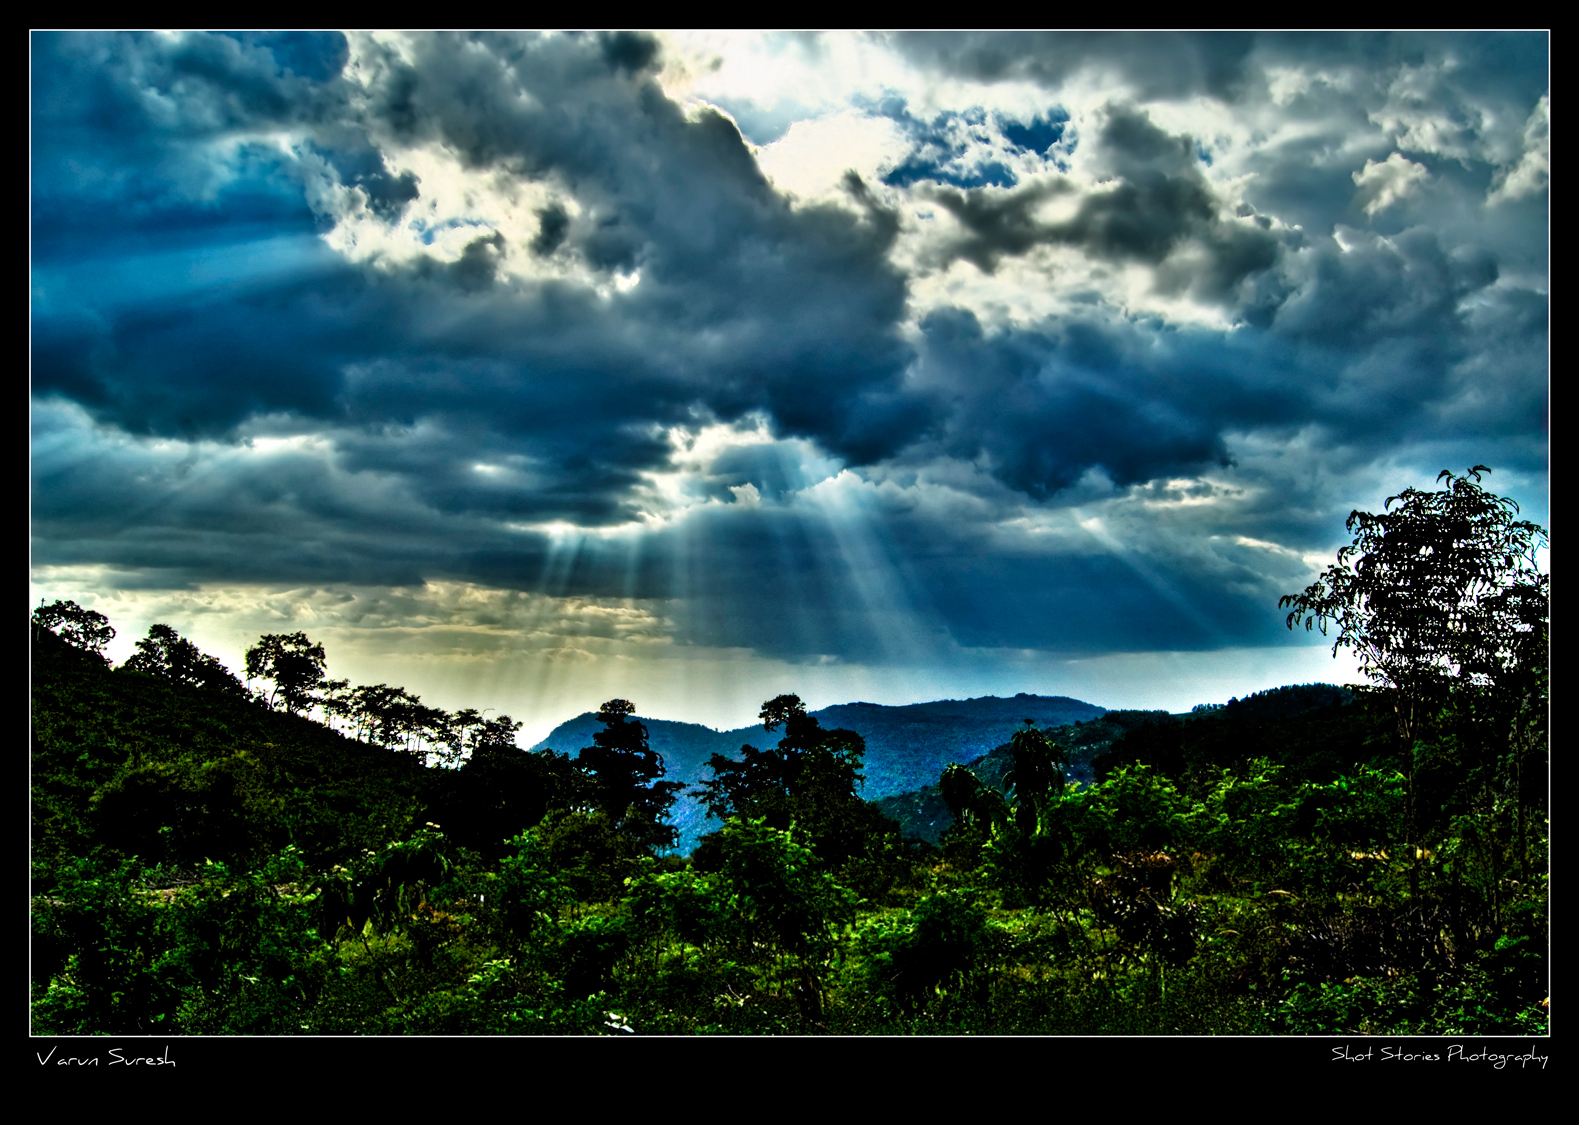 Description yercaud scenery